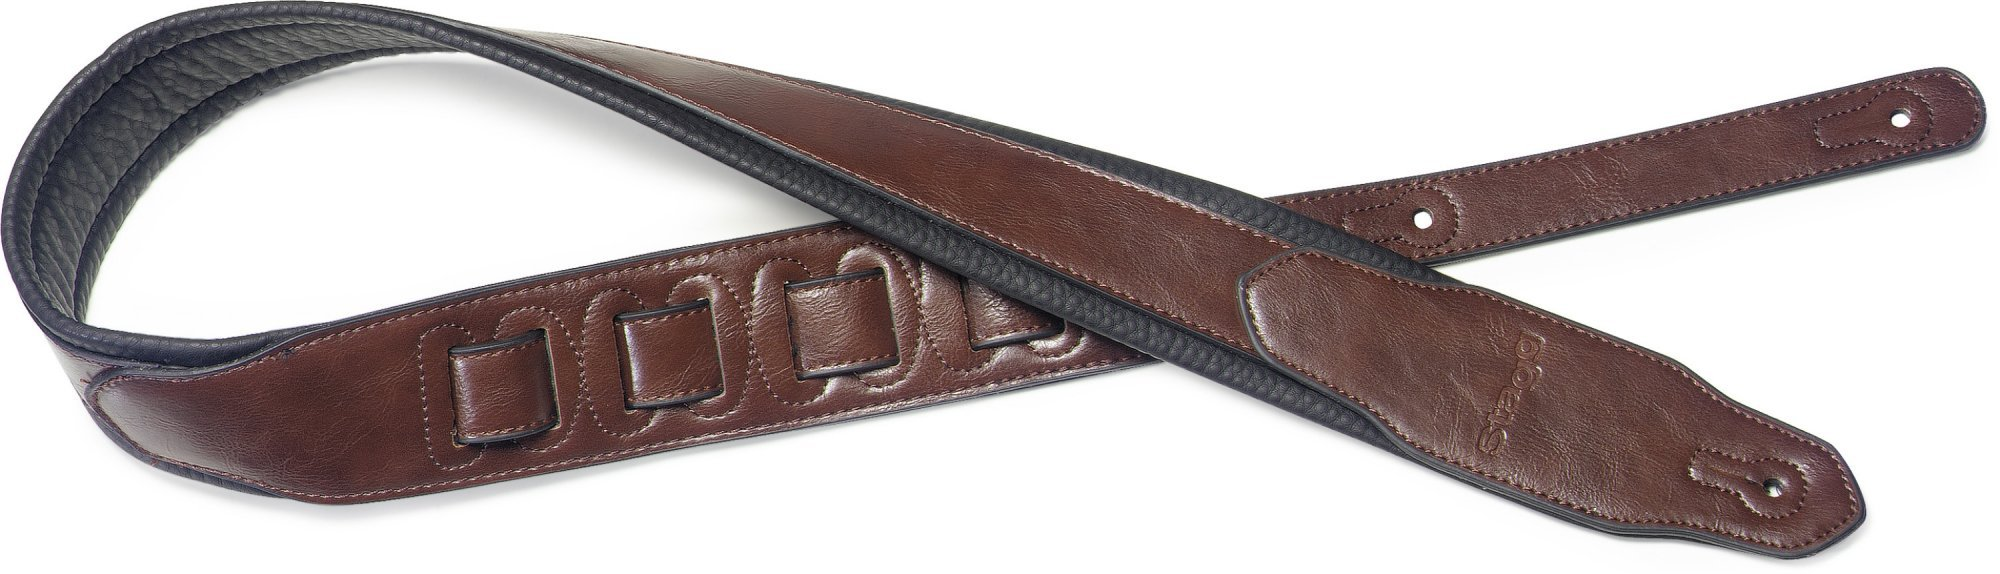 Stagg Leatherette Guitar Strap - Various Colors